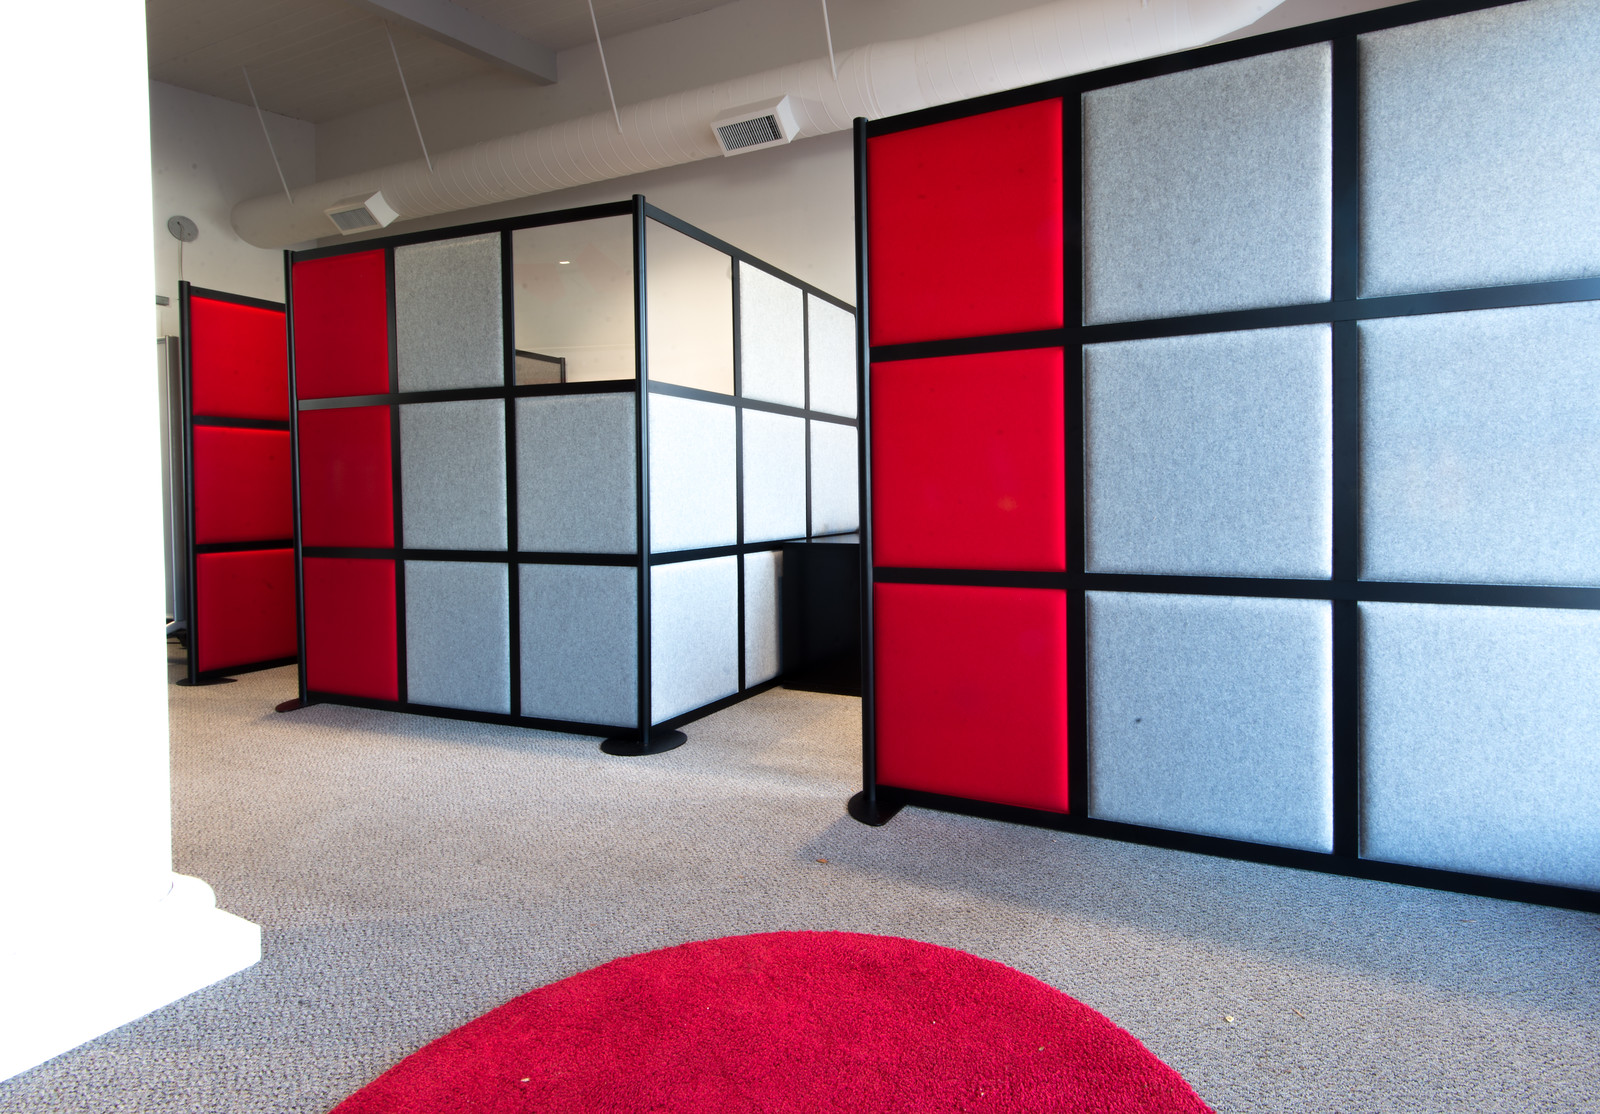 harris-worksystems-mobile-acoustic-panels-cubicle-layout-x3.jpg